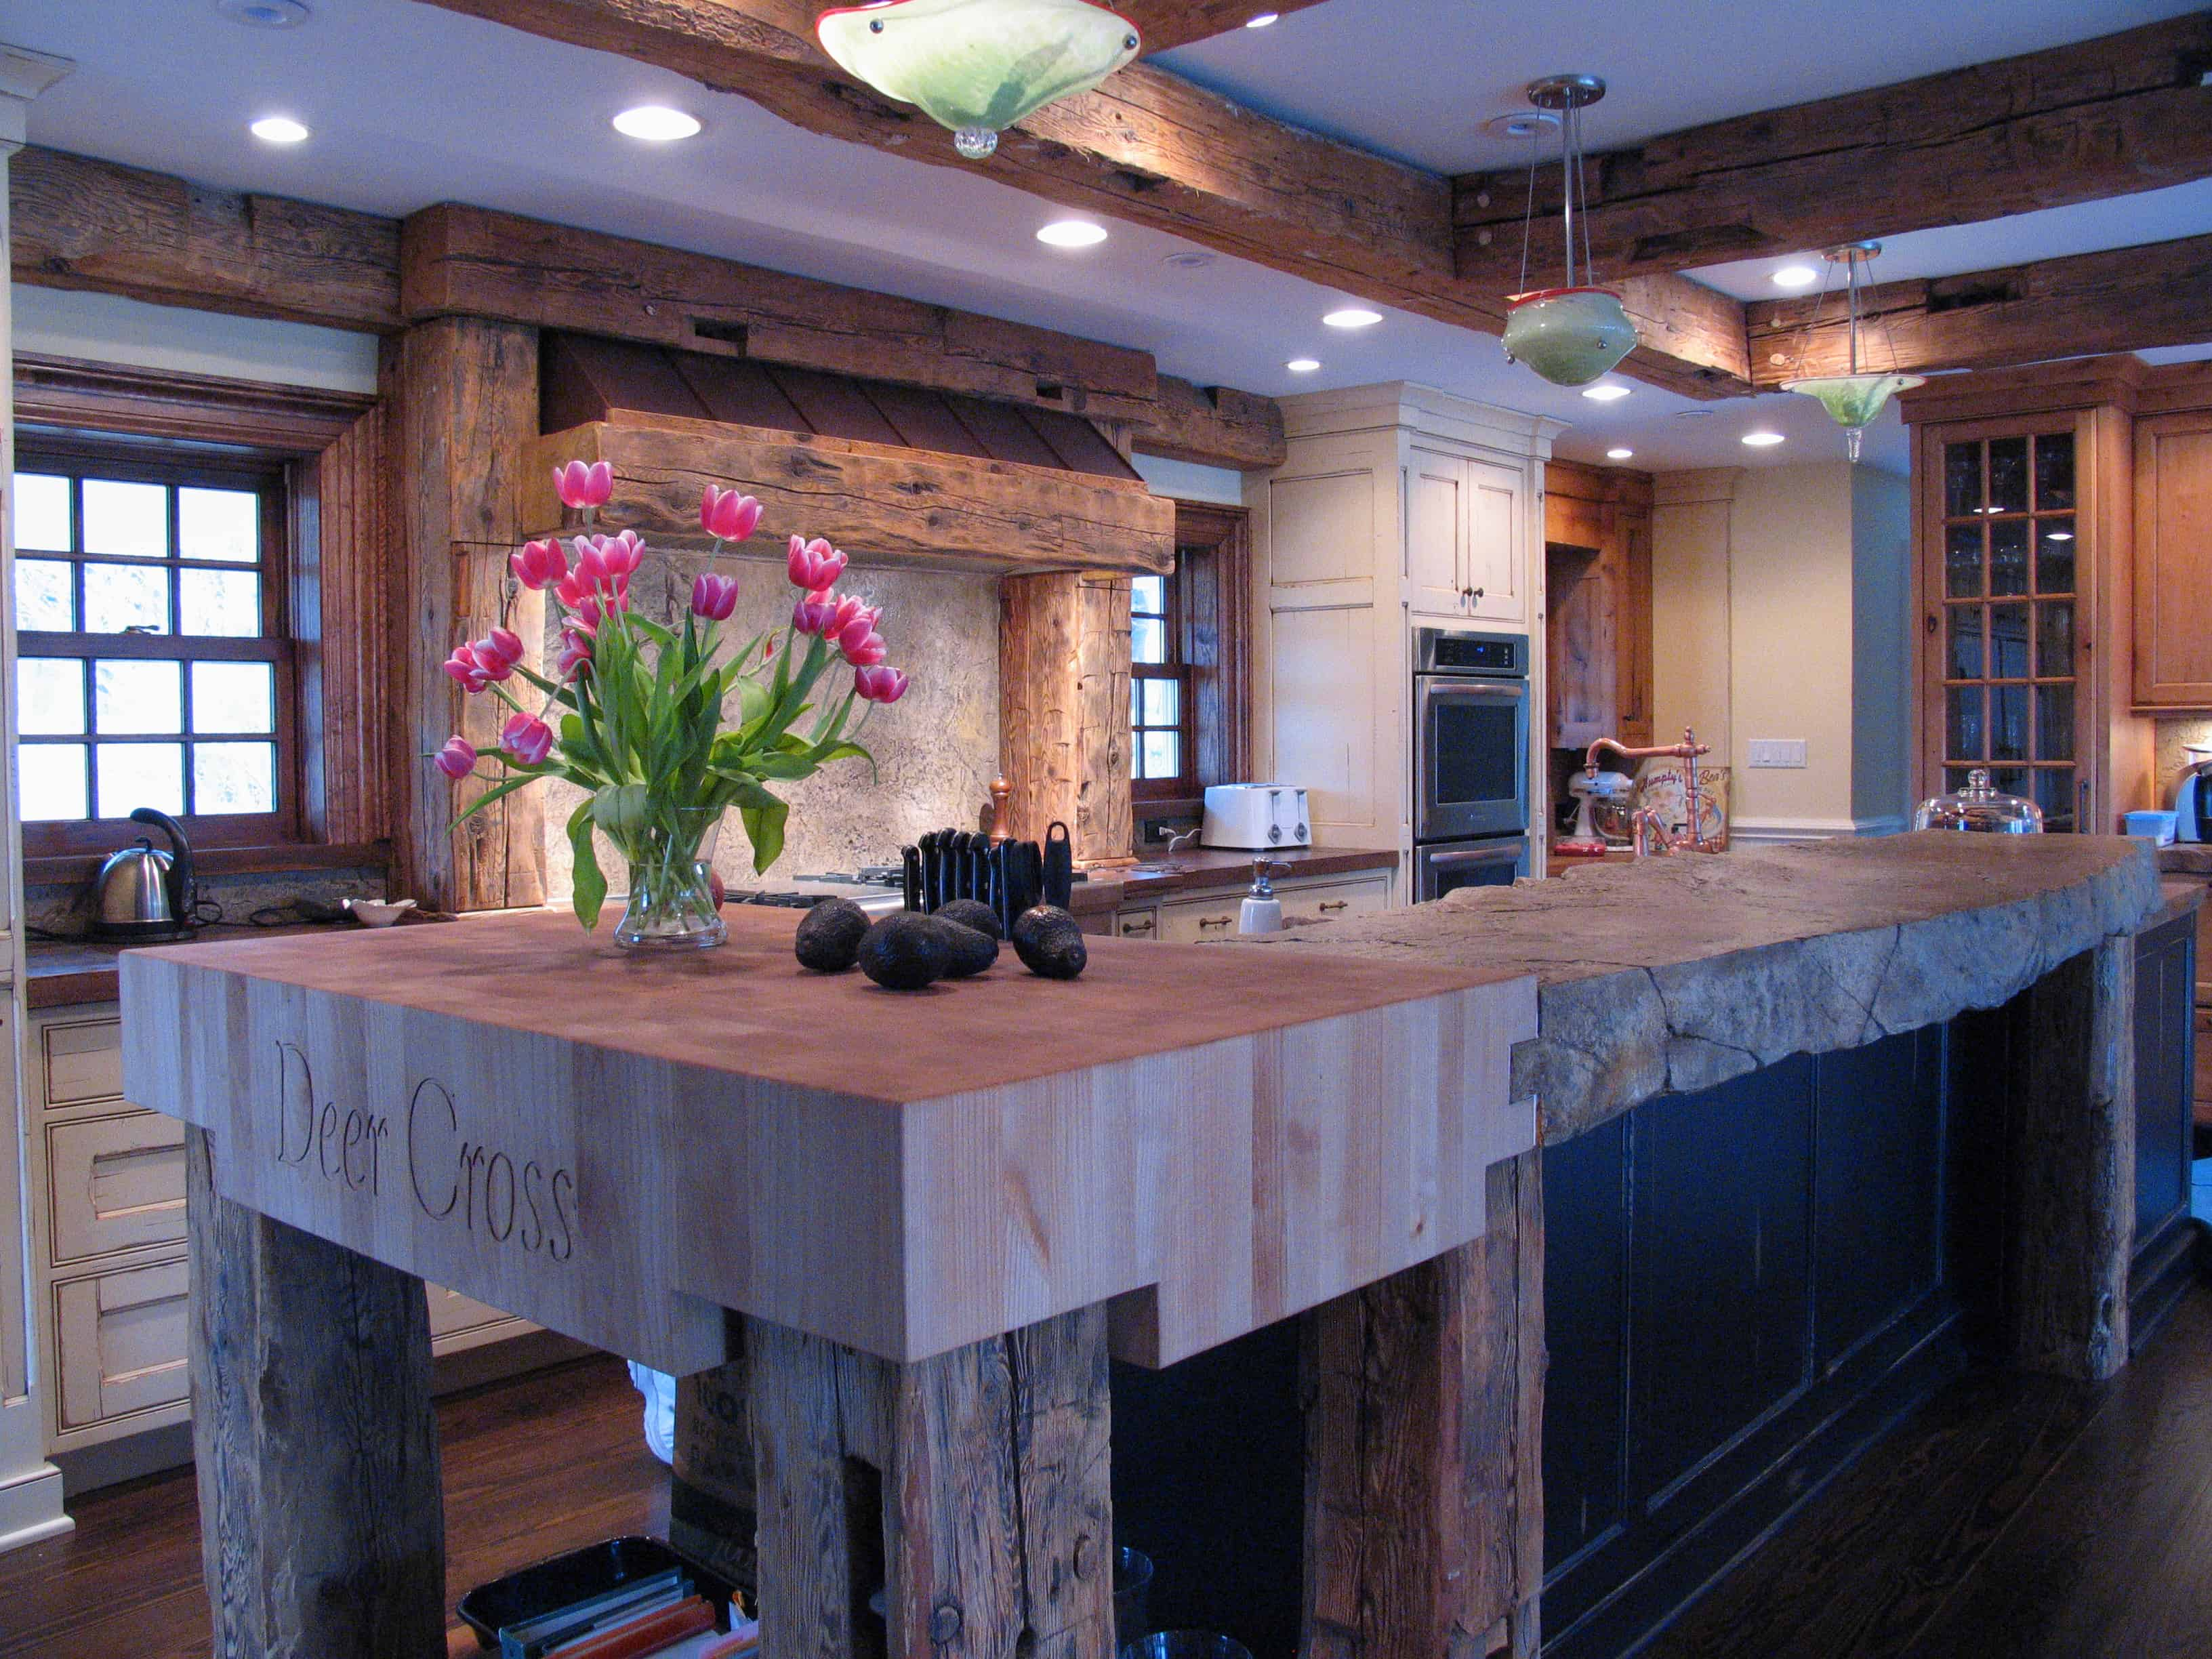 Modern Kitchen Countertops from Unusual Materials: 30 Ideas on Modern Kitchen Counter  id=95188